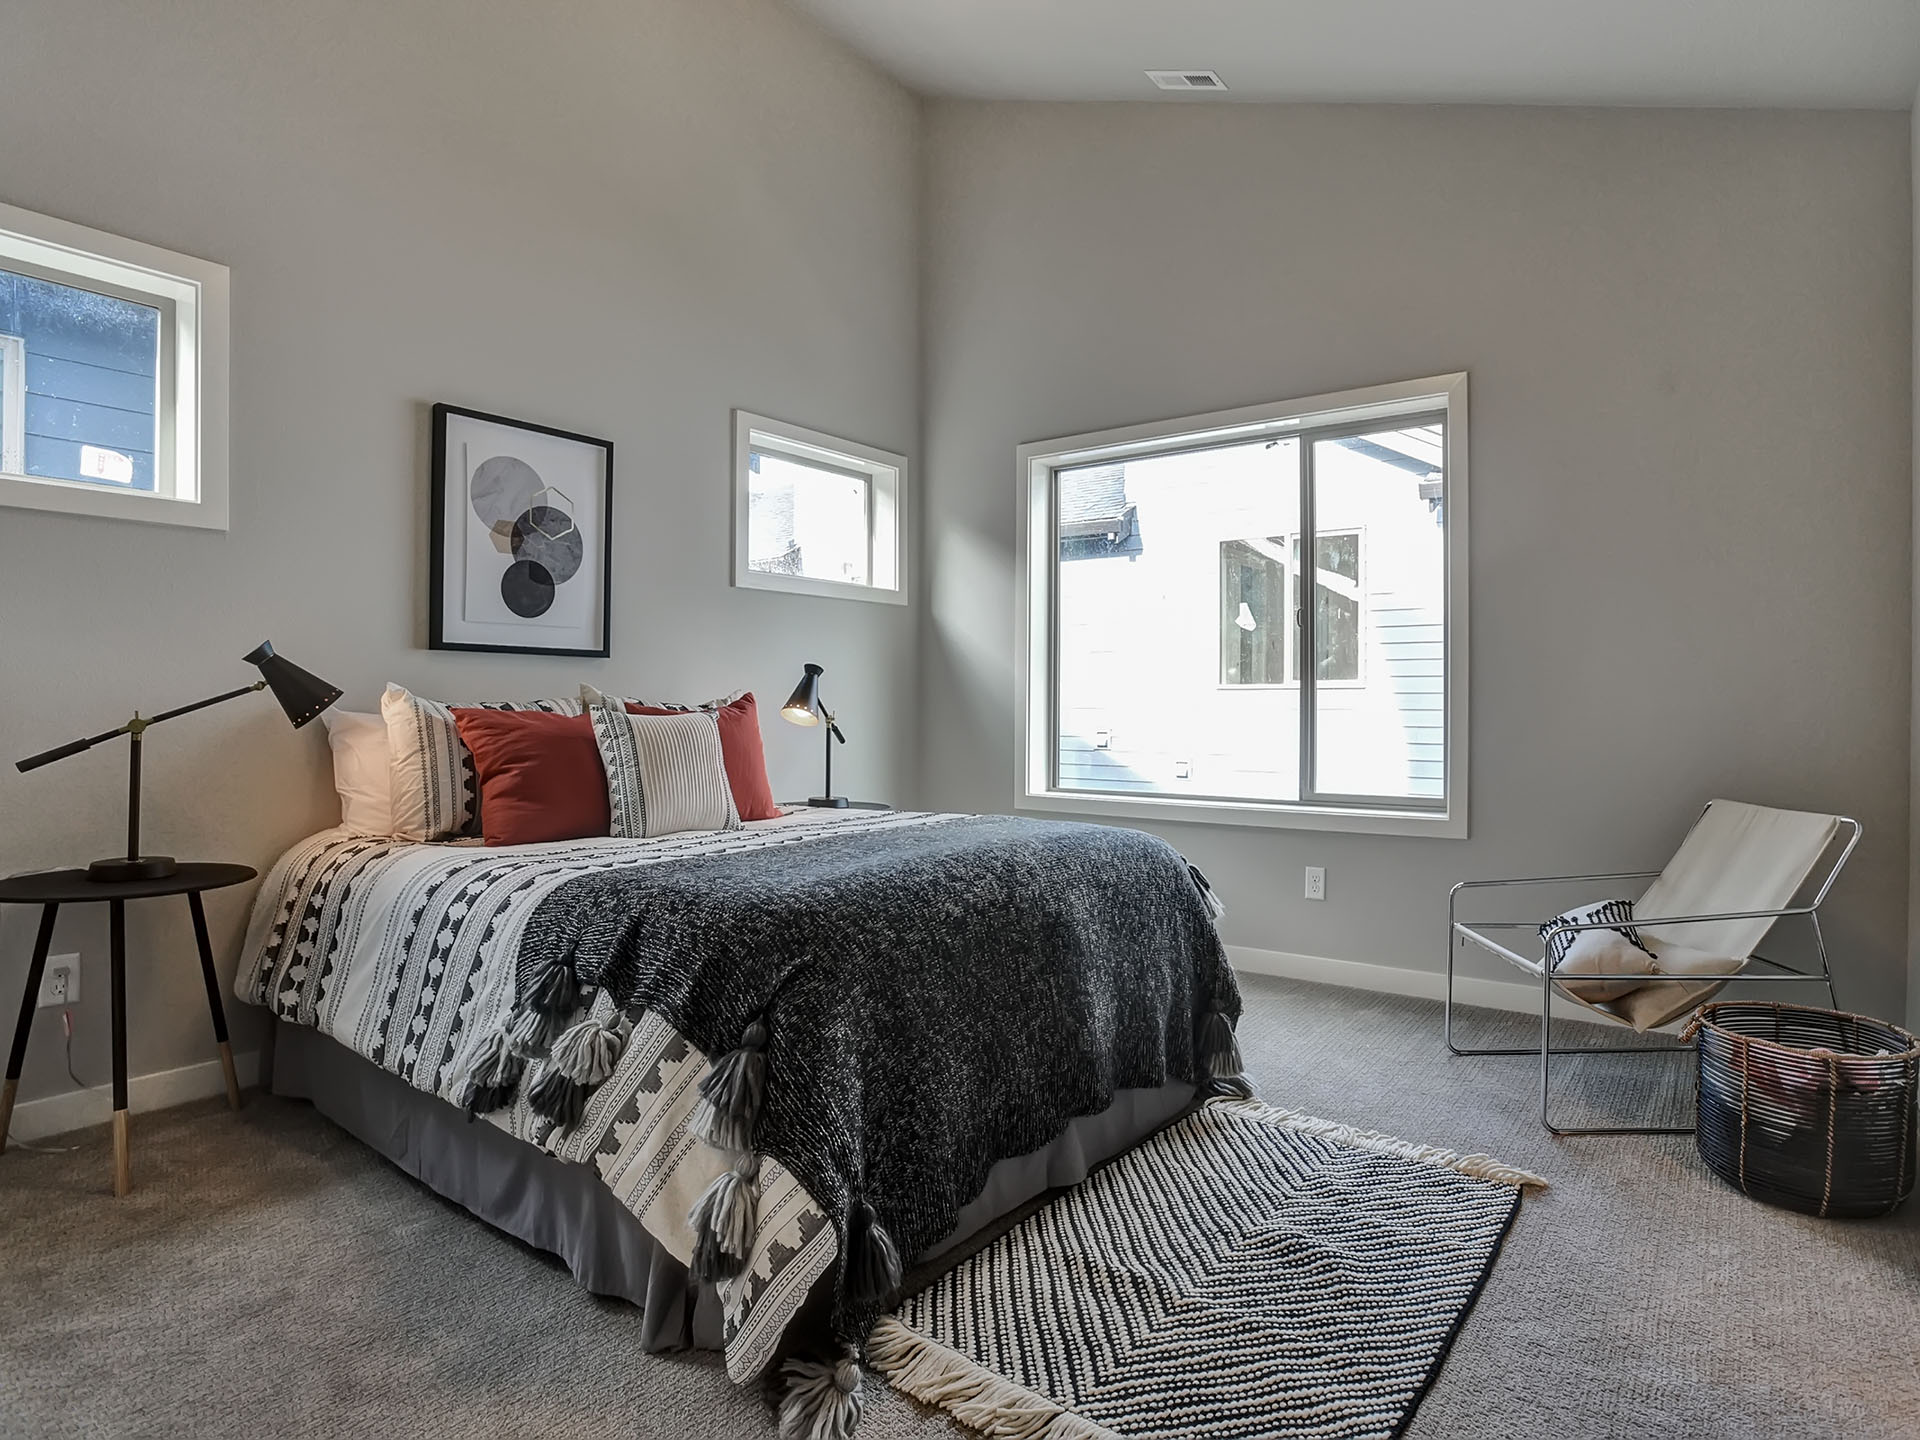 OWN IT… on 42nd Avenue in NE Portland. - Townhouse style condos3 beds/2.5 baths*1,430 square feet*Fantastic location, Low HOAs$475,000Available Now - Occupancy March 2019